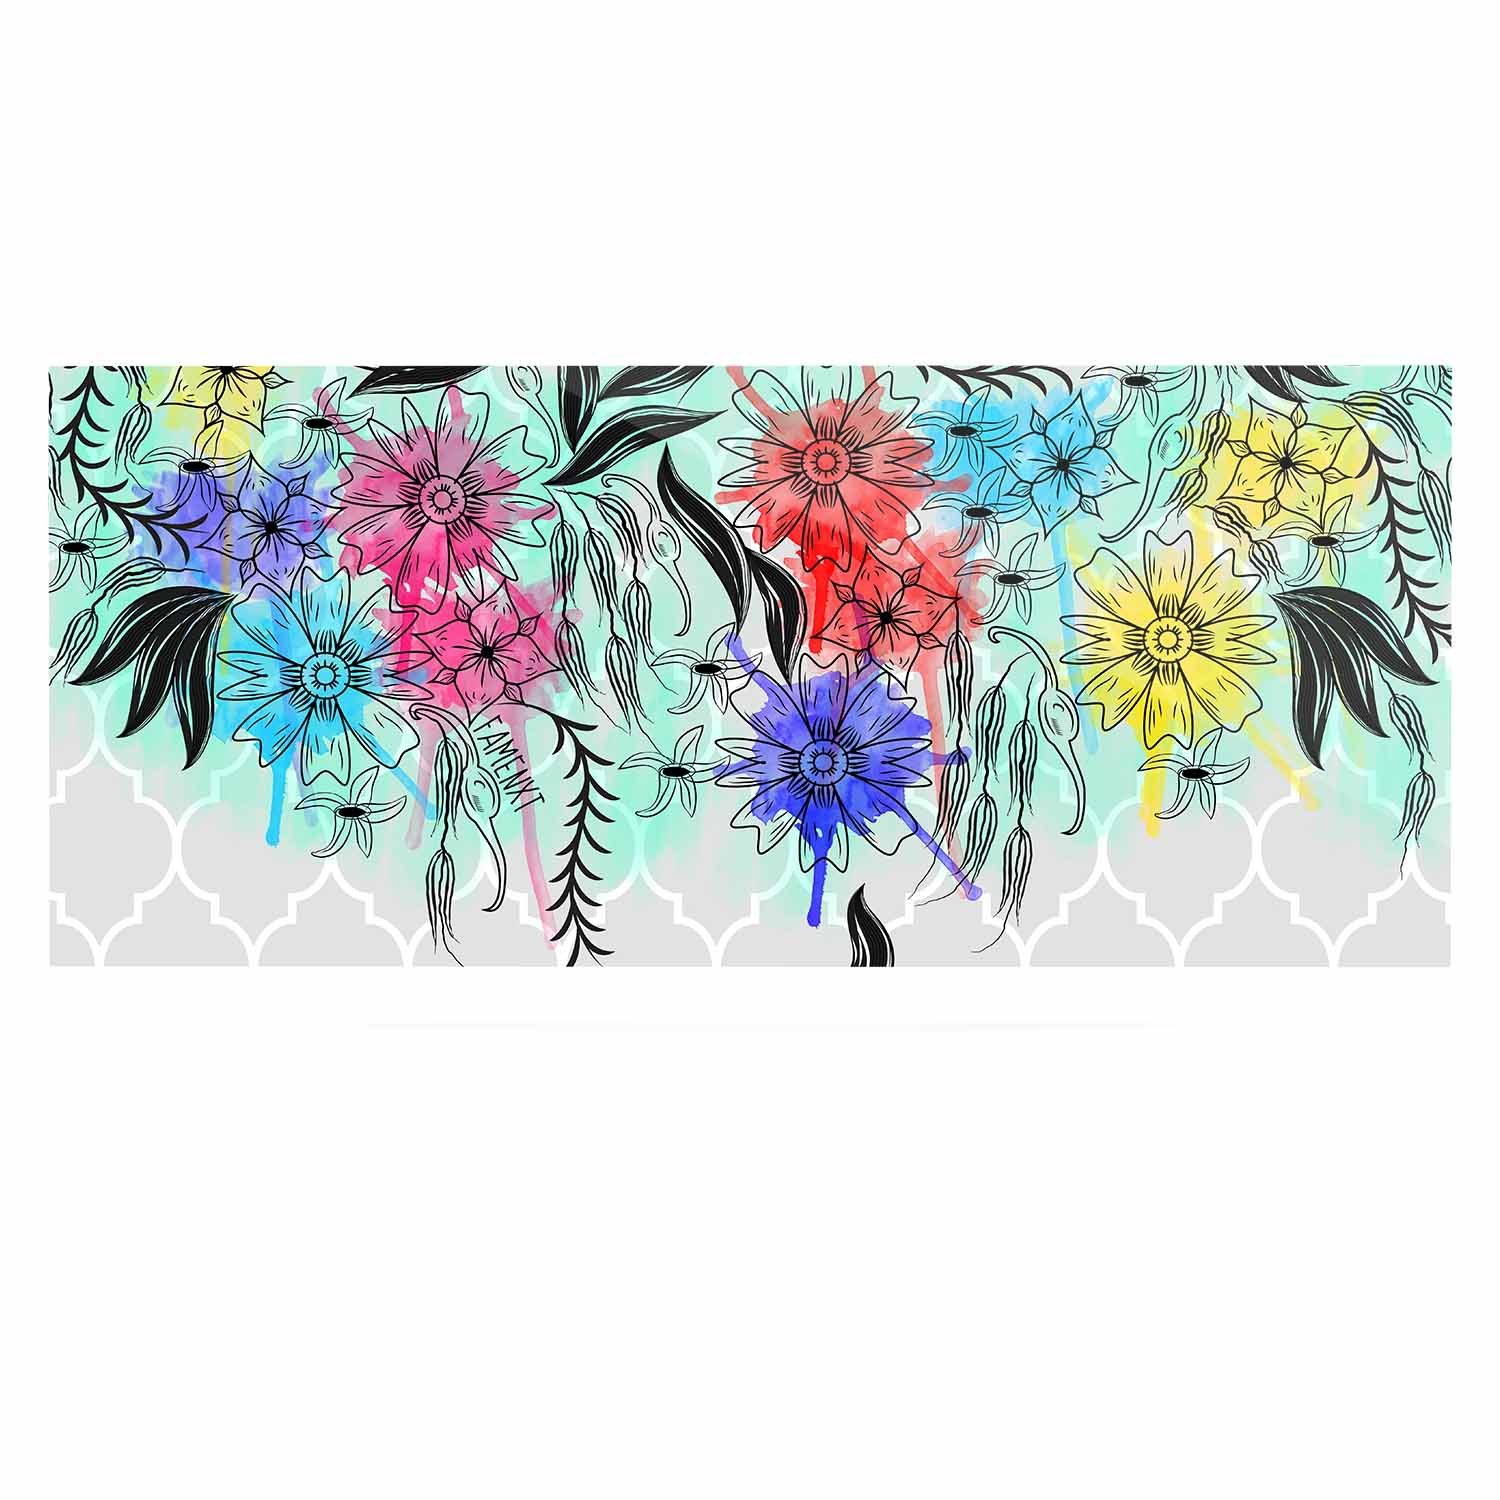 24 x 36 Kess InHouse Famenxt Watercolor Spring Gray Floral Luxe Rectangle Panel